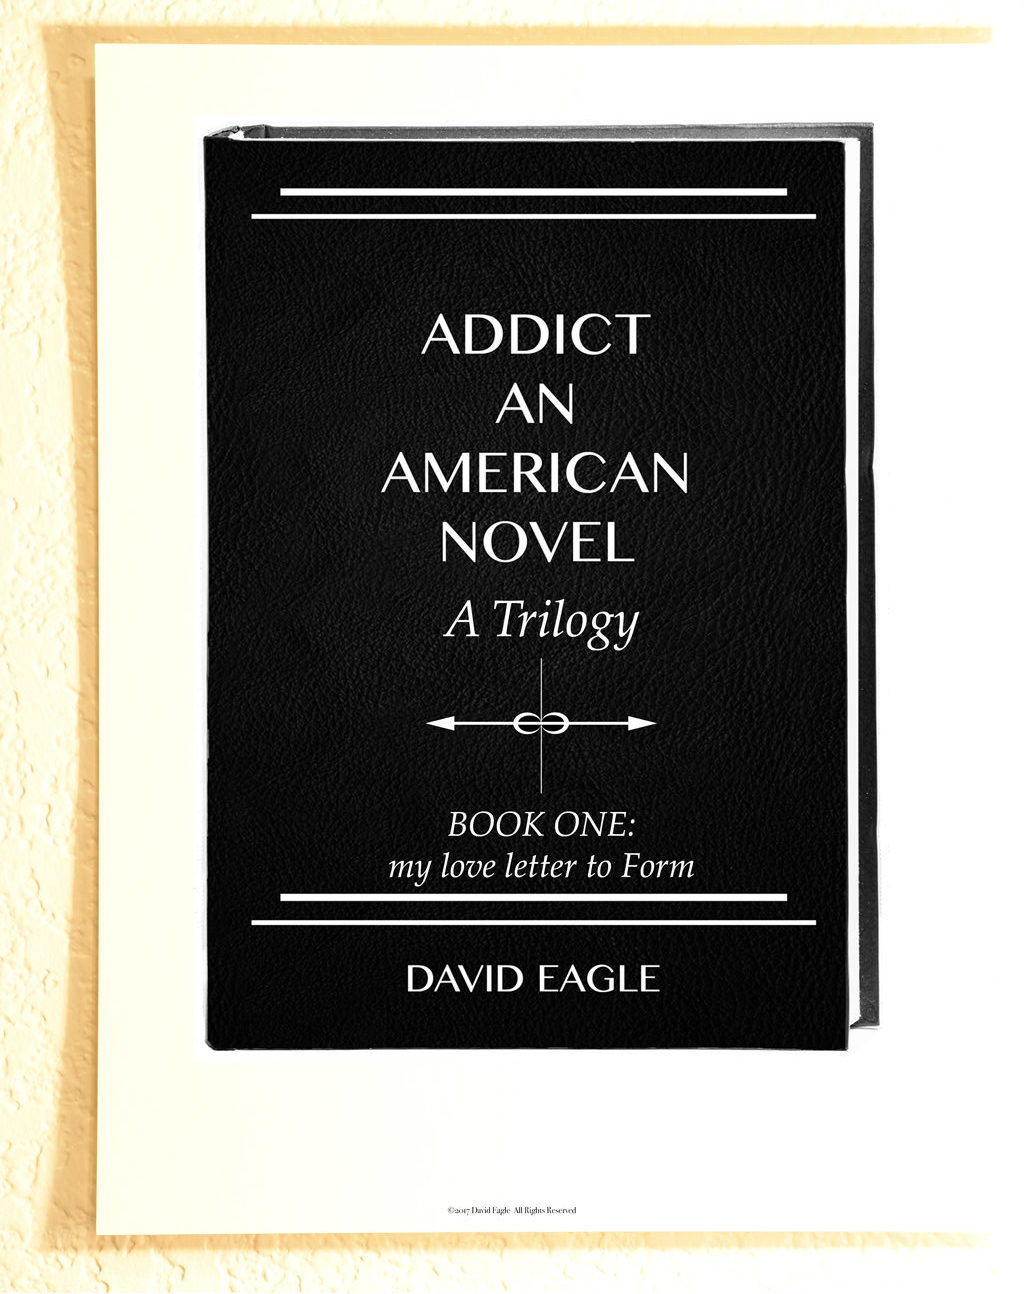 Addict An American Novel A Trilogy Book One: my love letter to form David Eagle